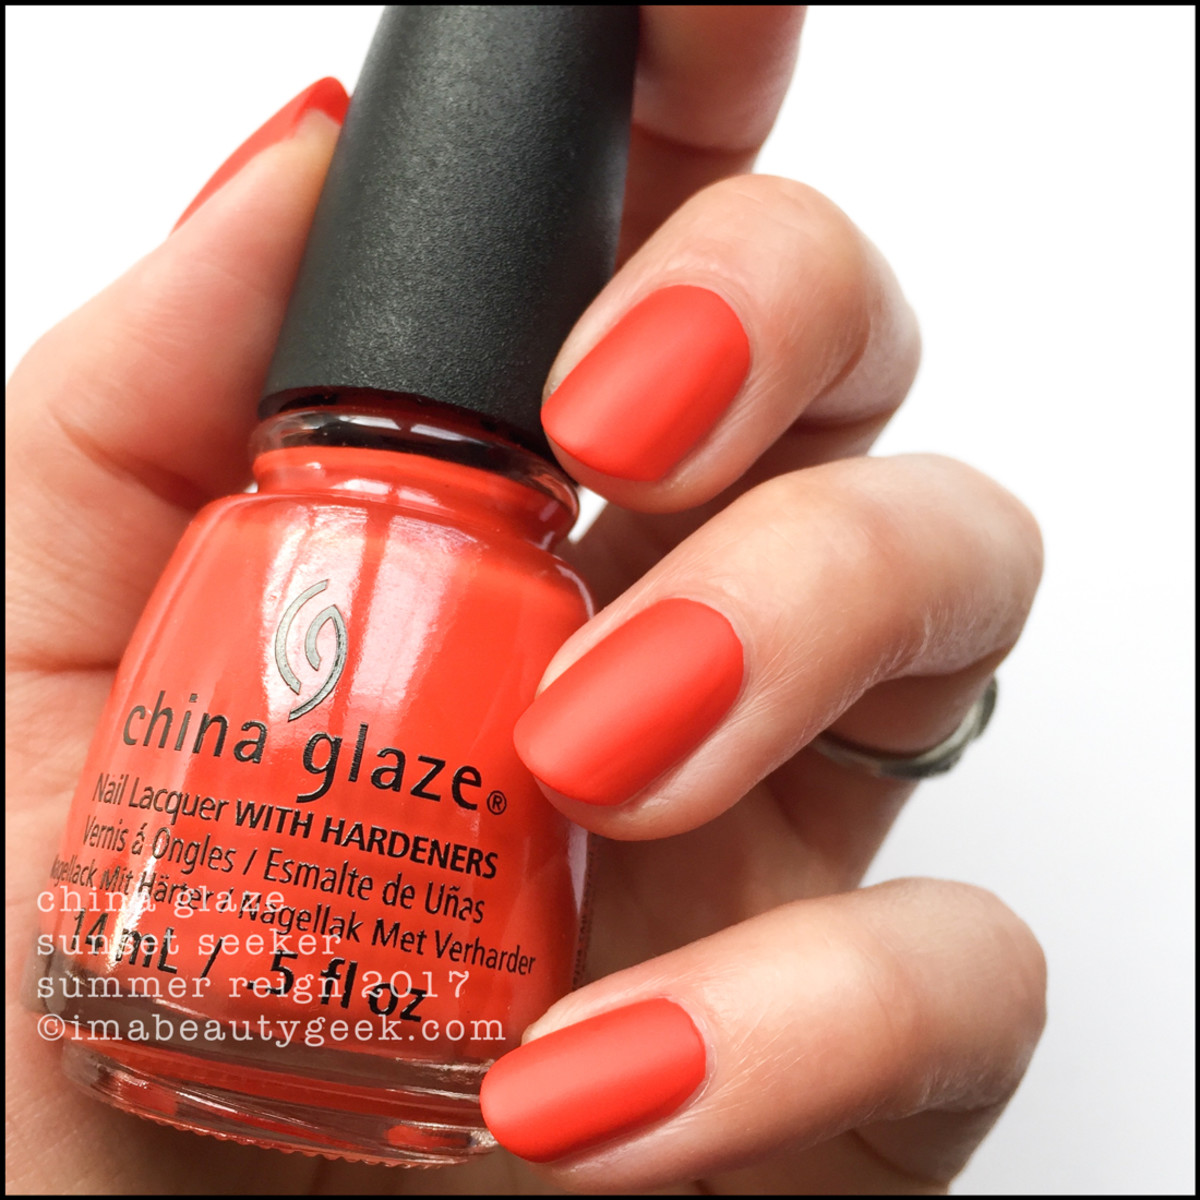 China Glaze Sunset Seeker no top_Summer Reign Collection